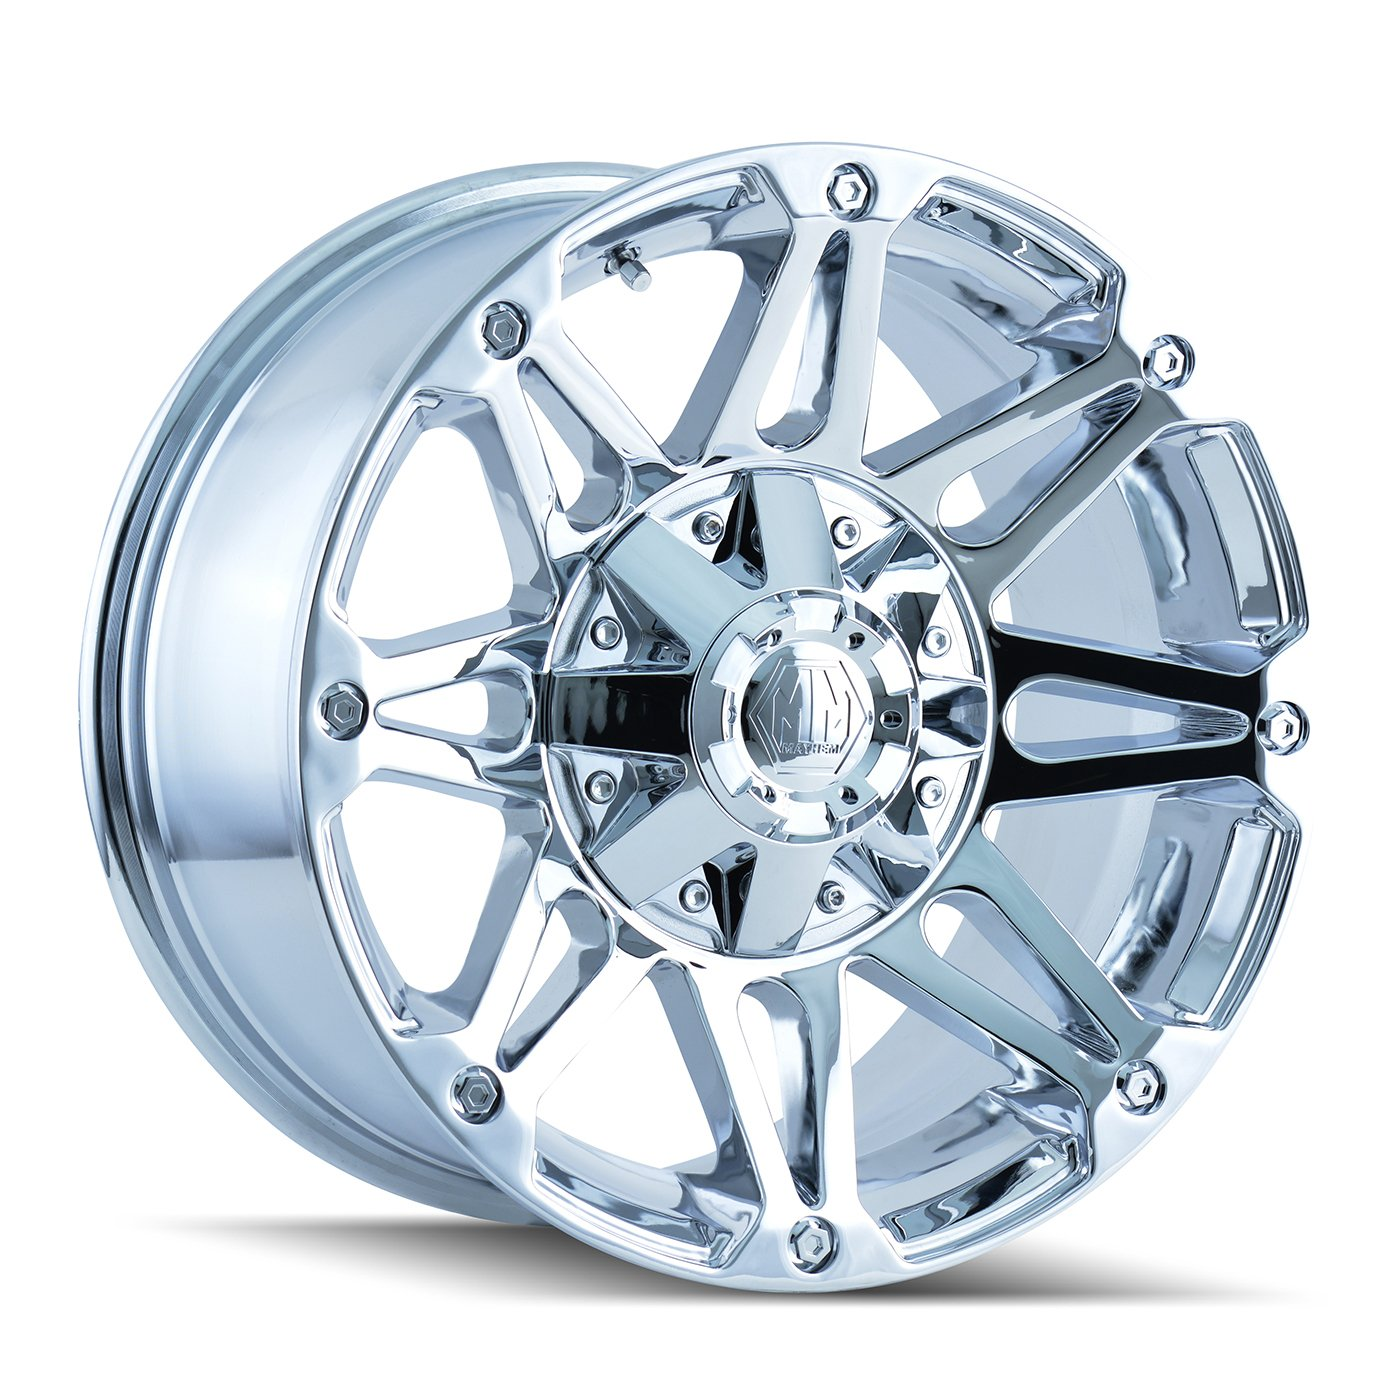 Mayhem Riot 8010 Chrome Wheel (20x9''/12x139.7mm) by Mayhem (Image #1)